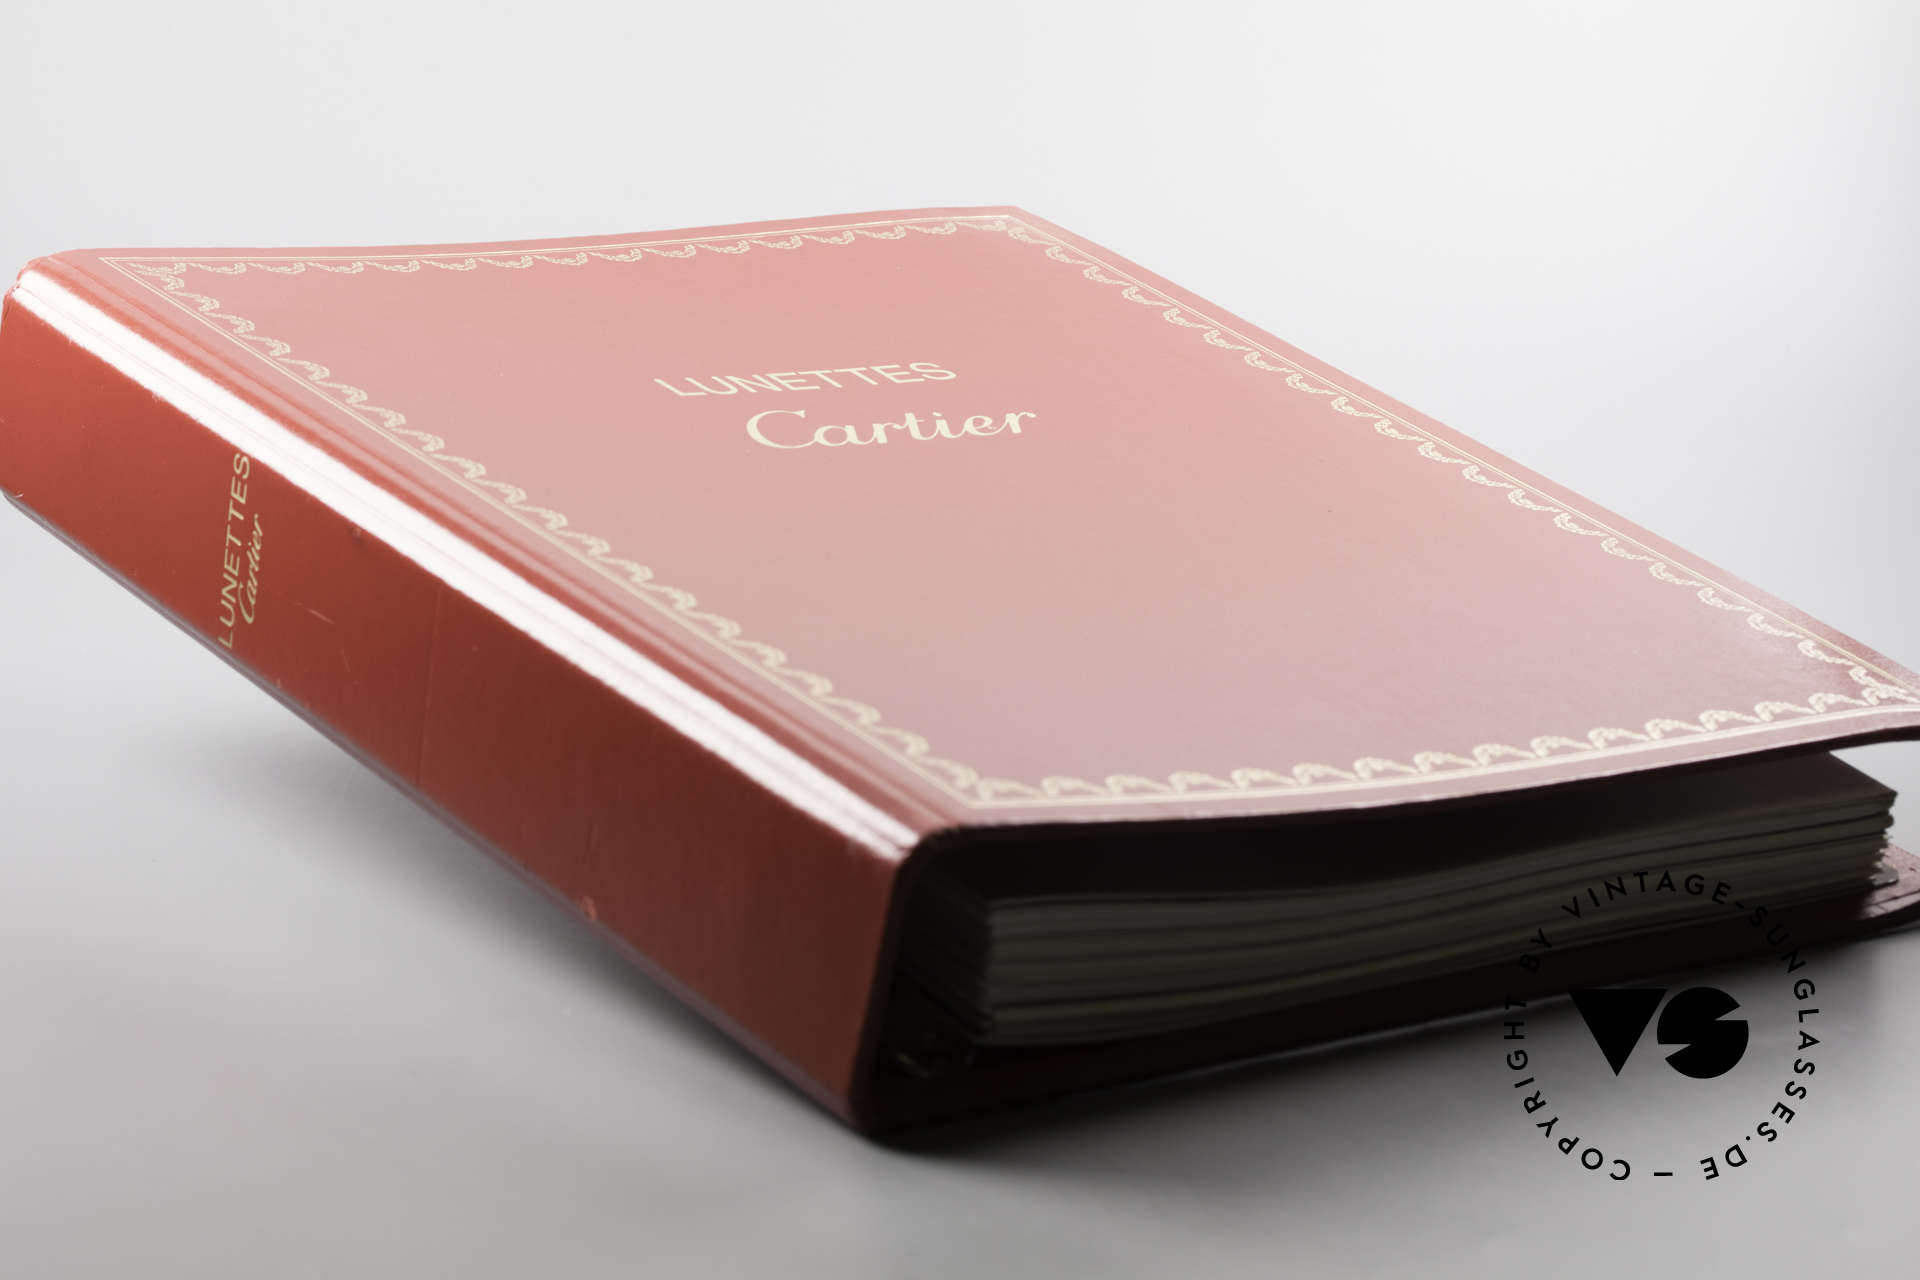 Cartier_ Catalog Cartier Lunettes Eyewear, very old catalog with the first Cartier Series, Made for Men and Women